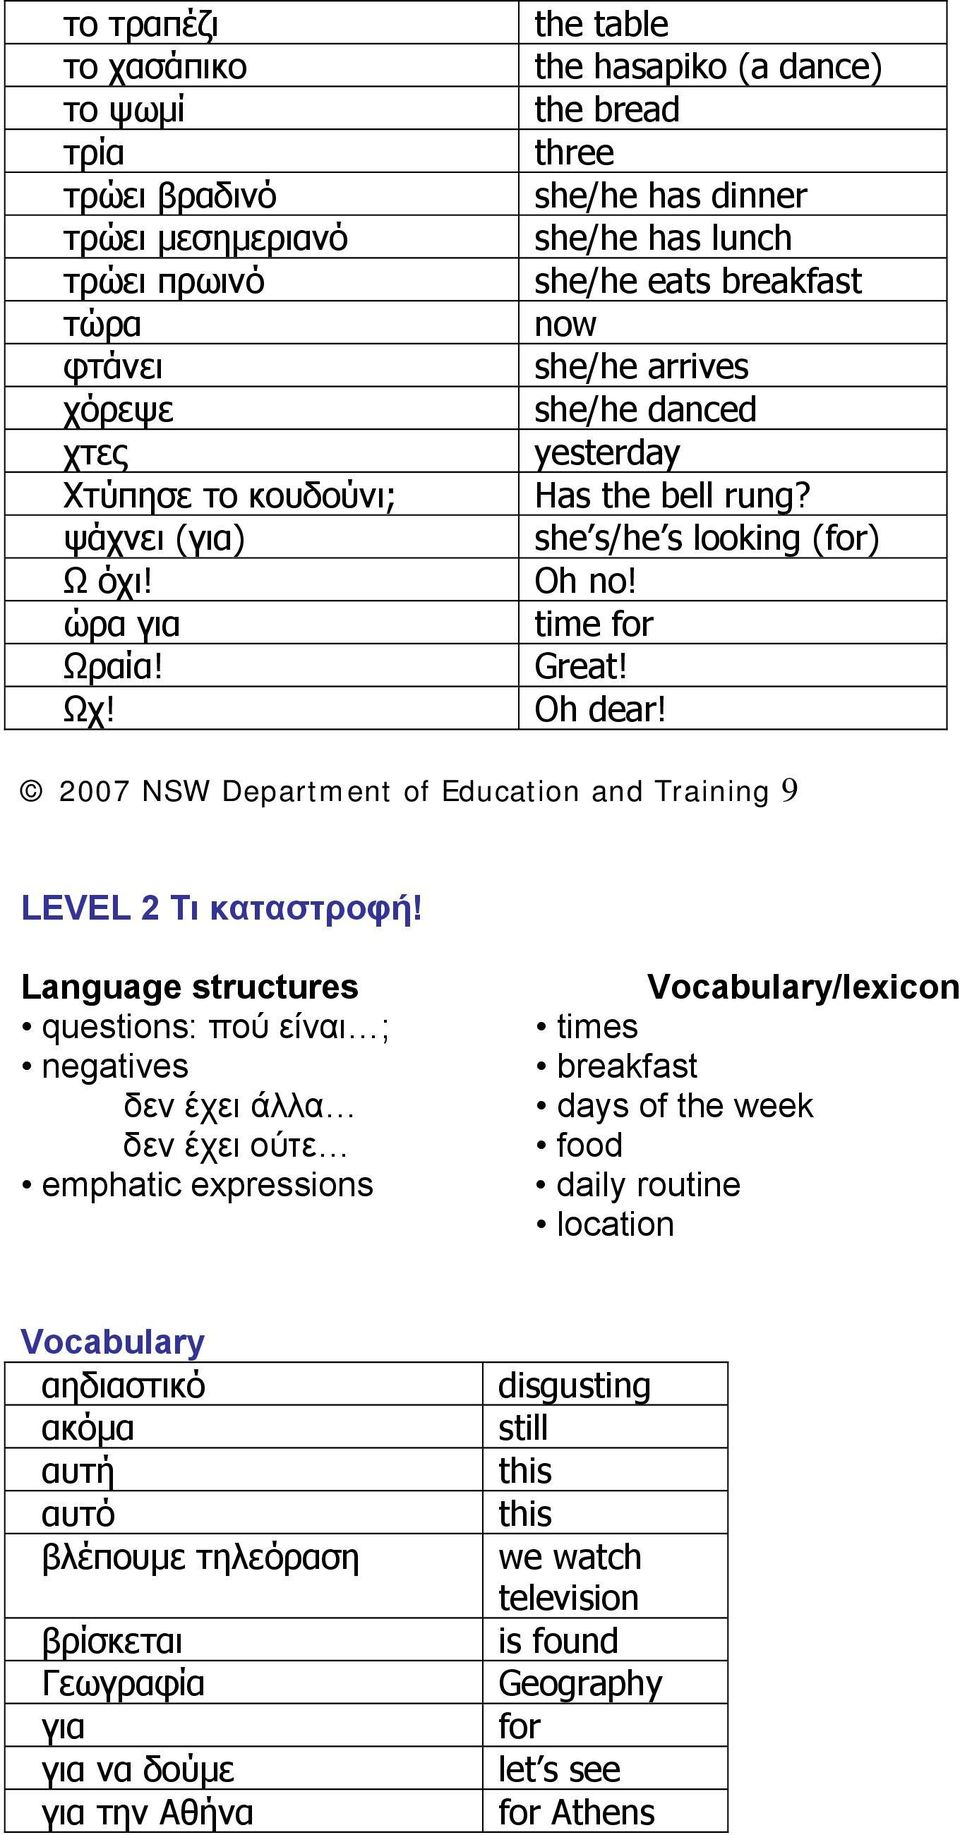 2007 NSW Department of Education and Training 9 LEVEL 2 Τι καταστροφή!